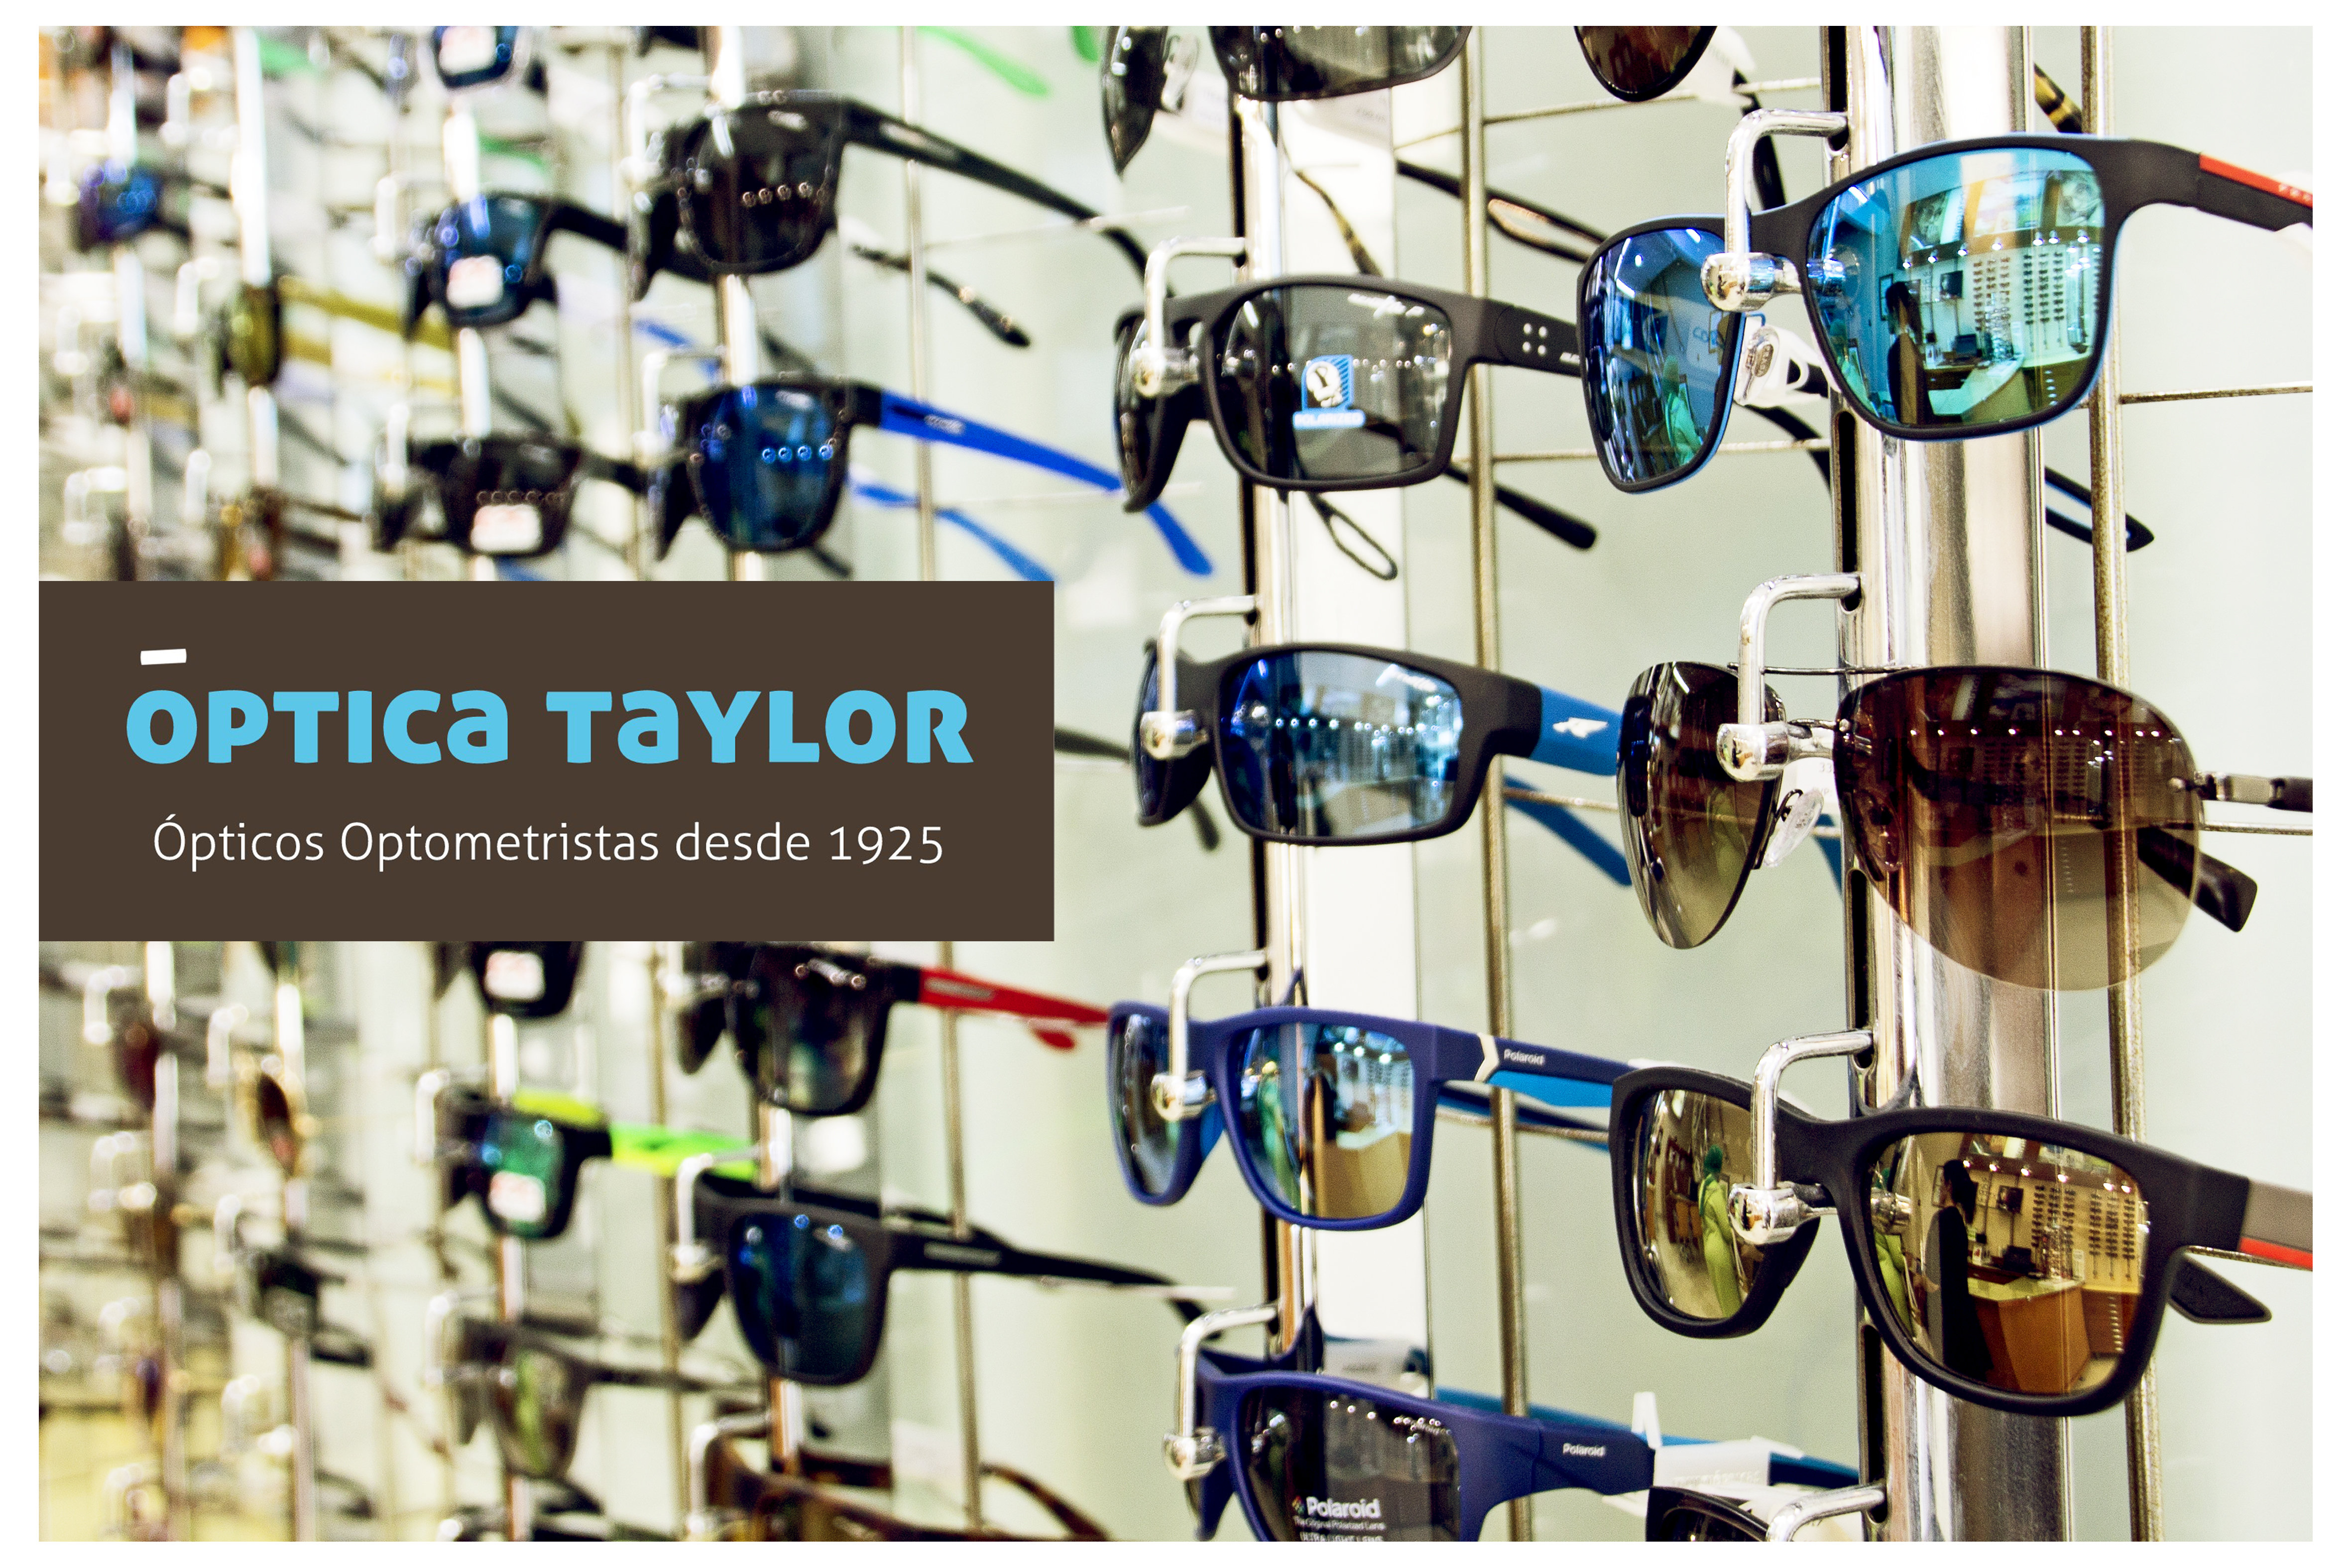 Optica Taylor Fotos CECC (4)